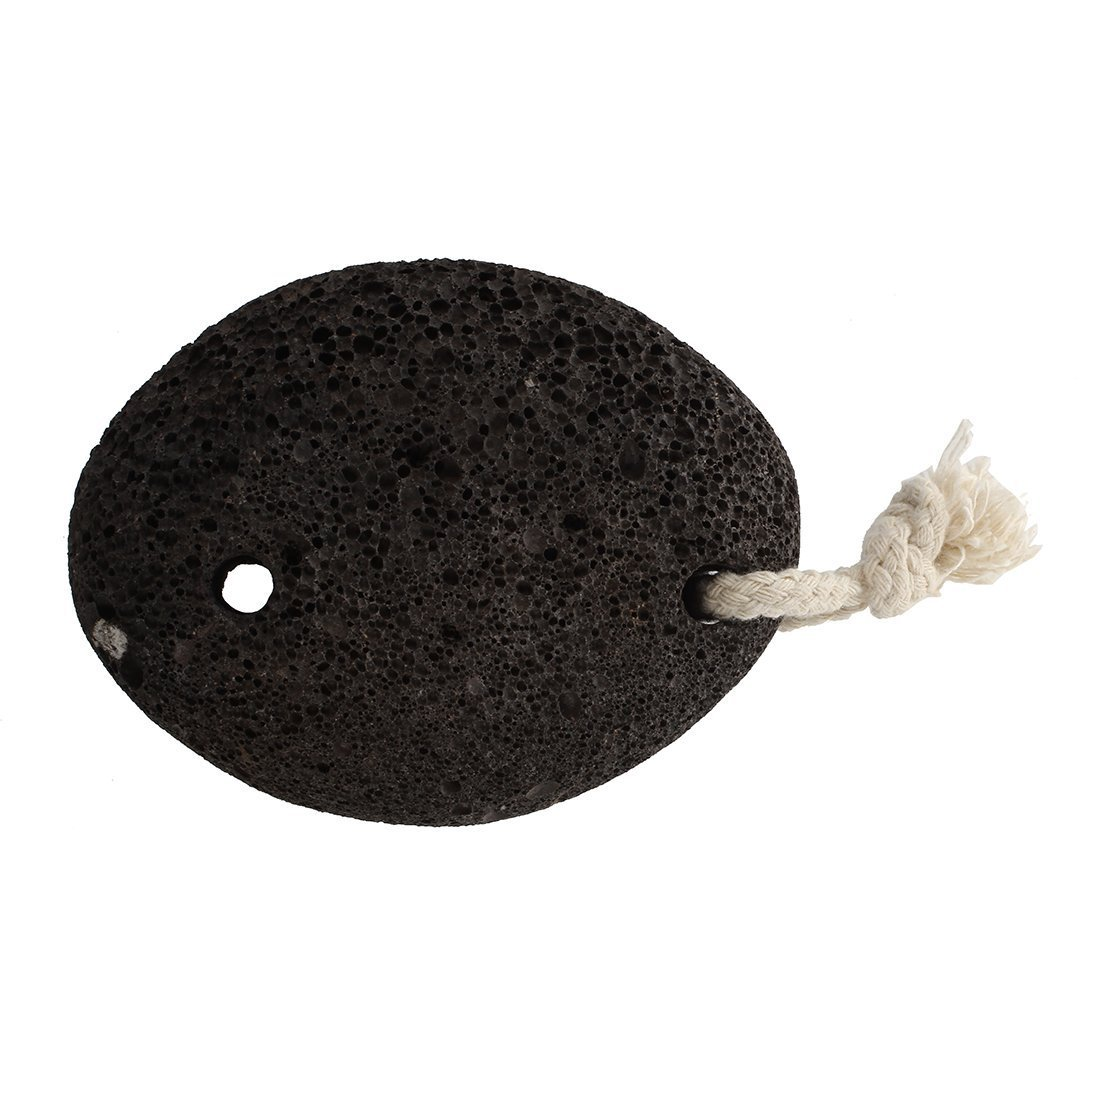 Pumice Stone - SODIAL(R)Natural Paddle Cushion Massage Brush Earth Lava Pumice Stone Remove Dead Skin Foot Massage SPA